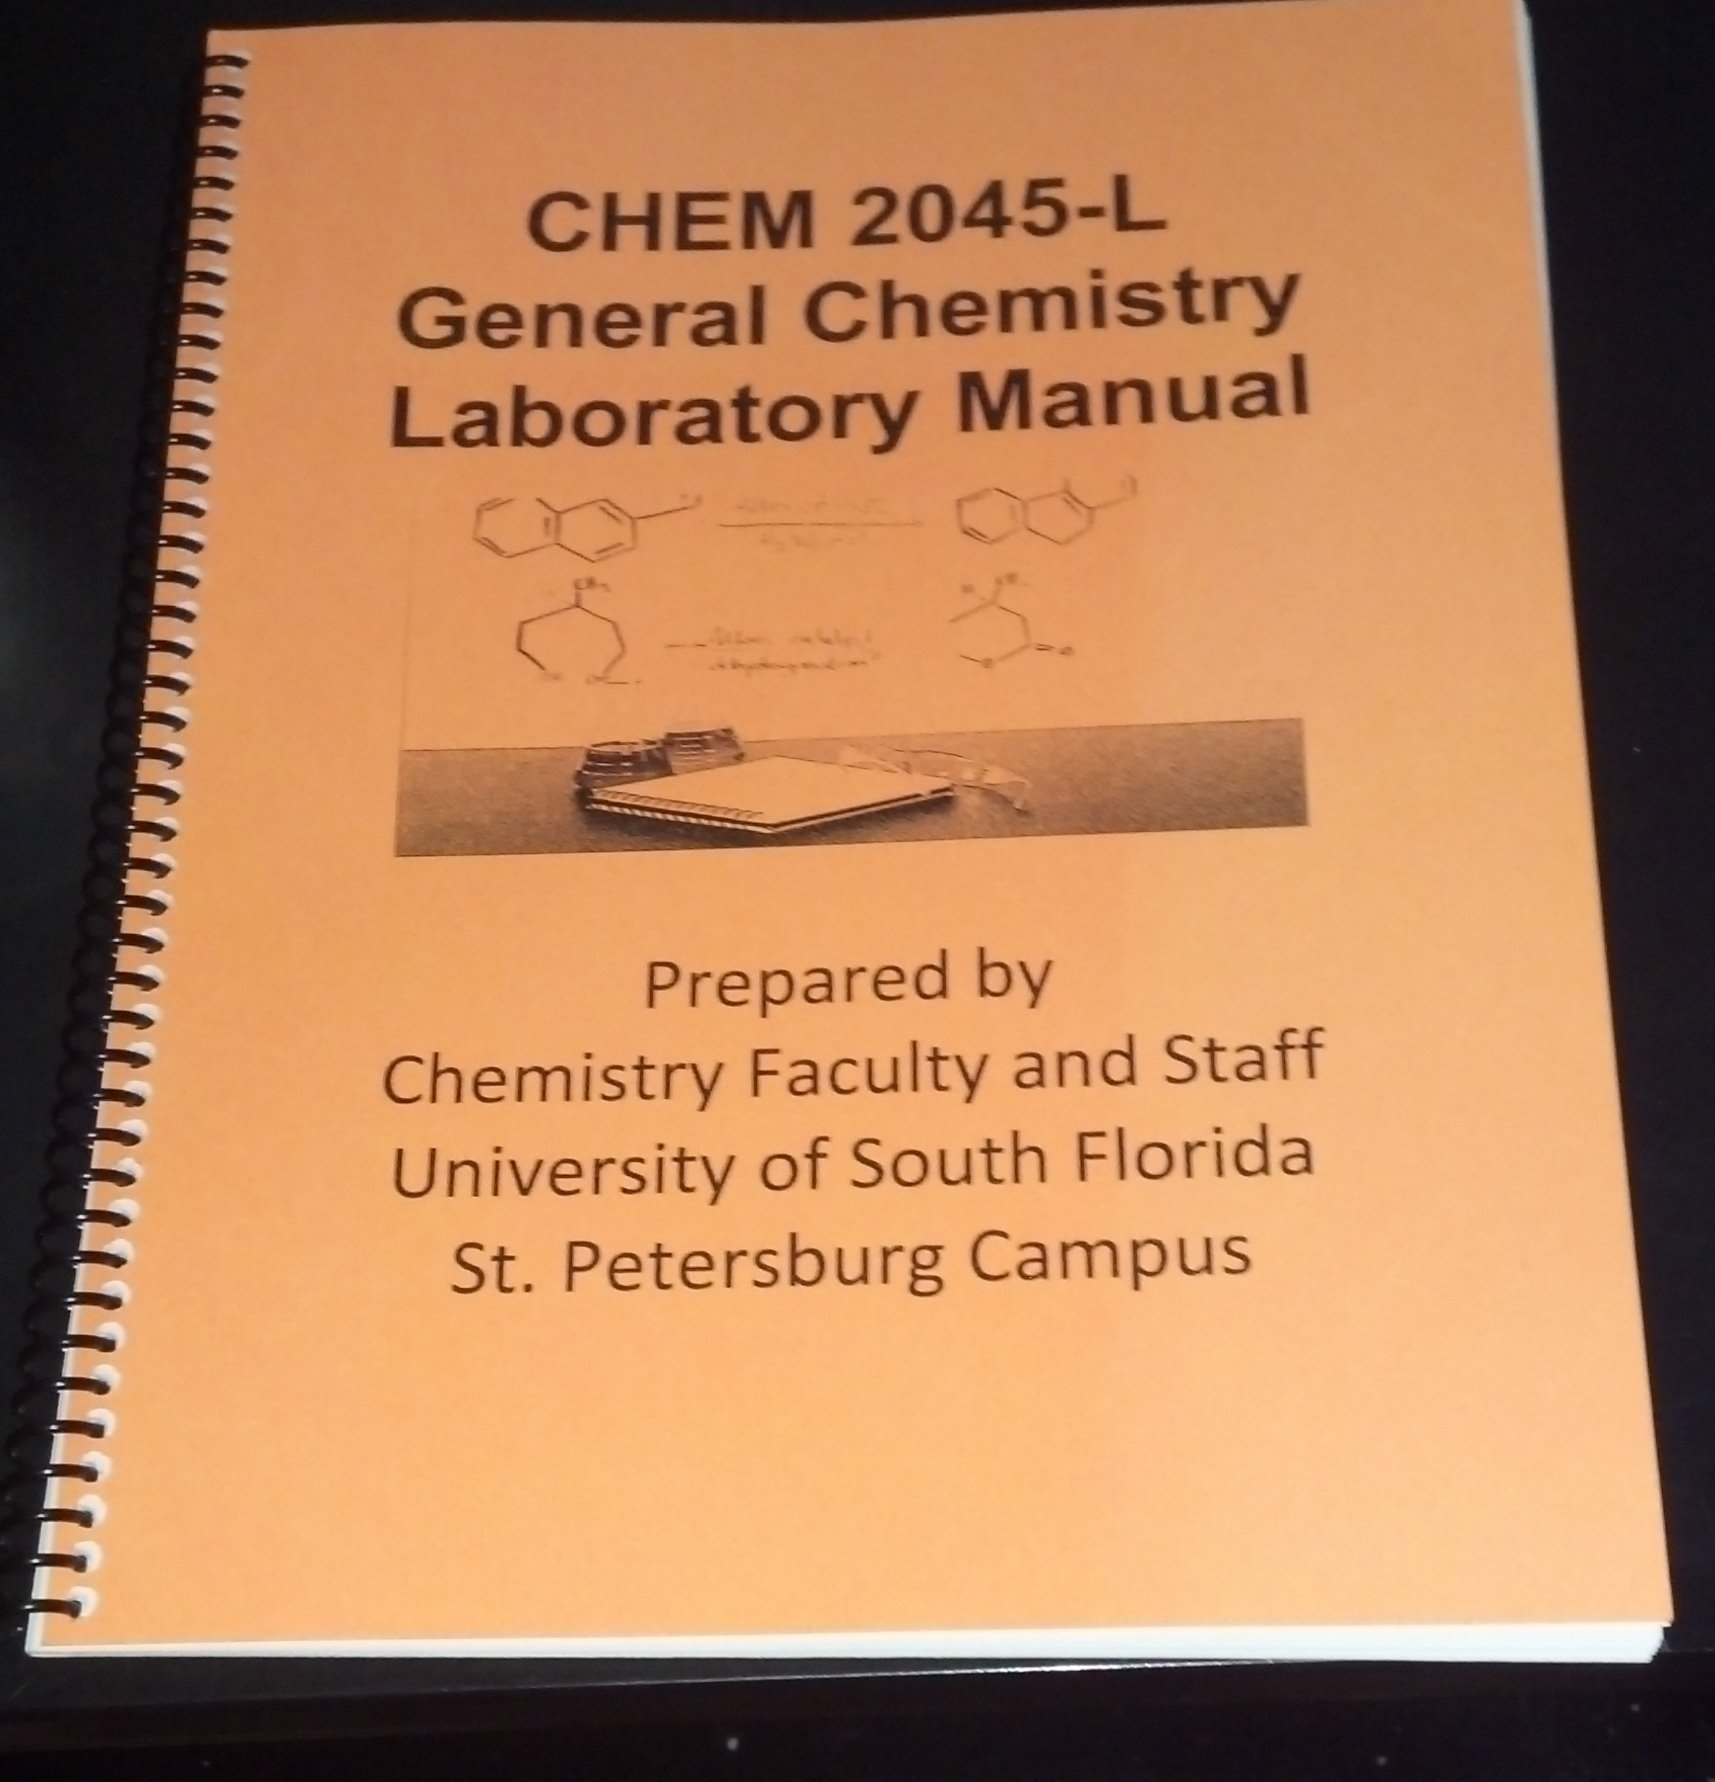 CHEM 2045-L General Chemistry Laboratory Manual (For Chemistry Lab 2045-L ( Chem 1)): Prepared by Chemistry Faculty and Staff University of South  Florida ...